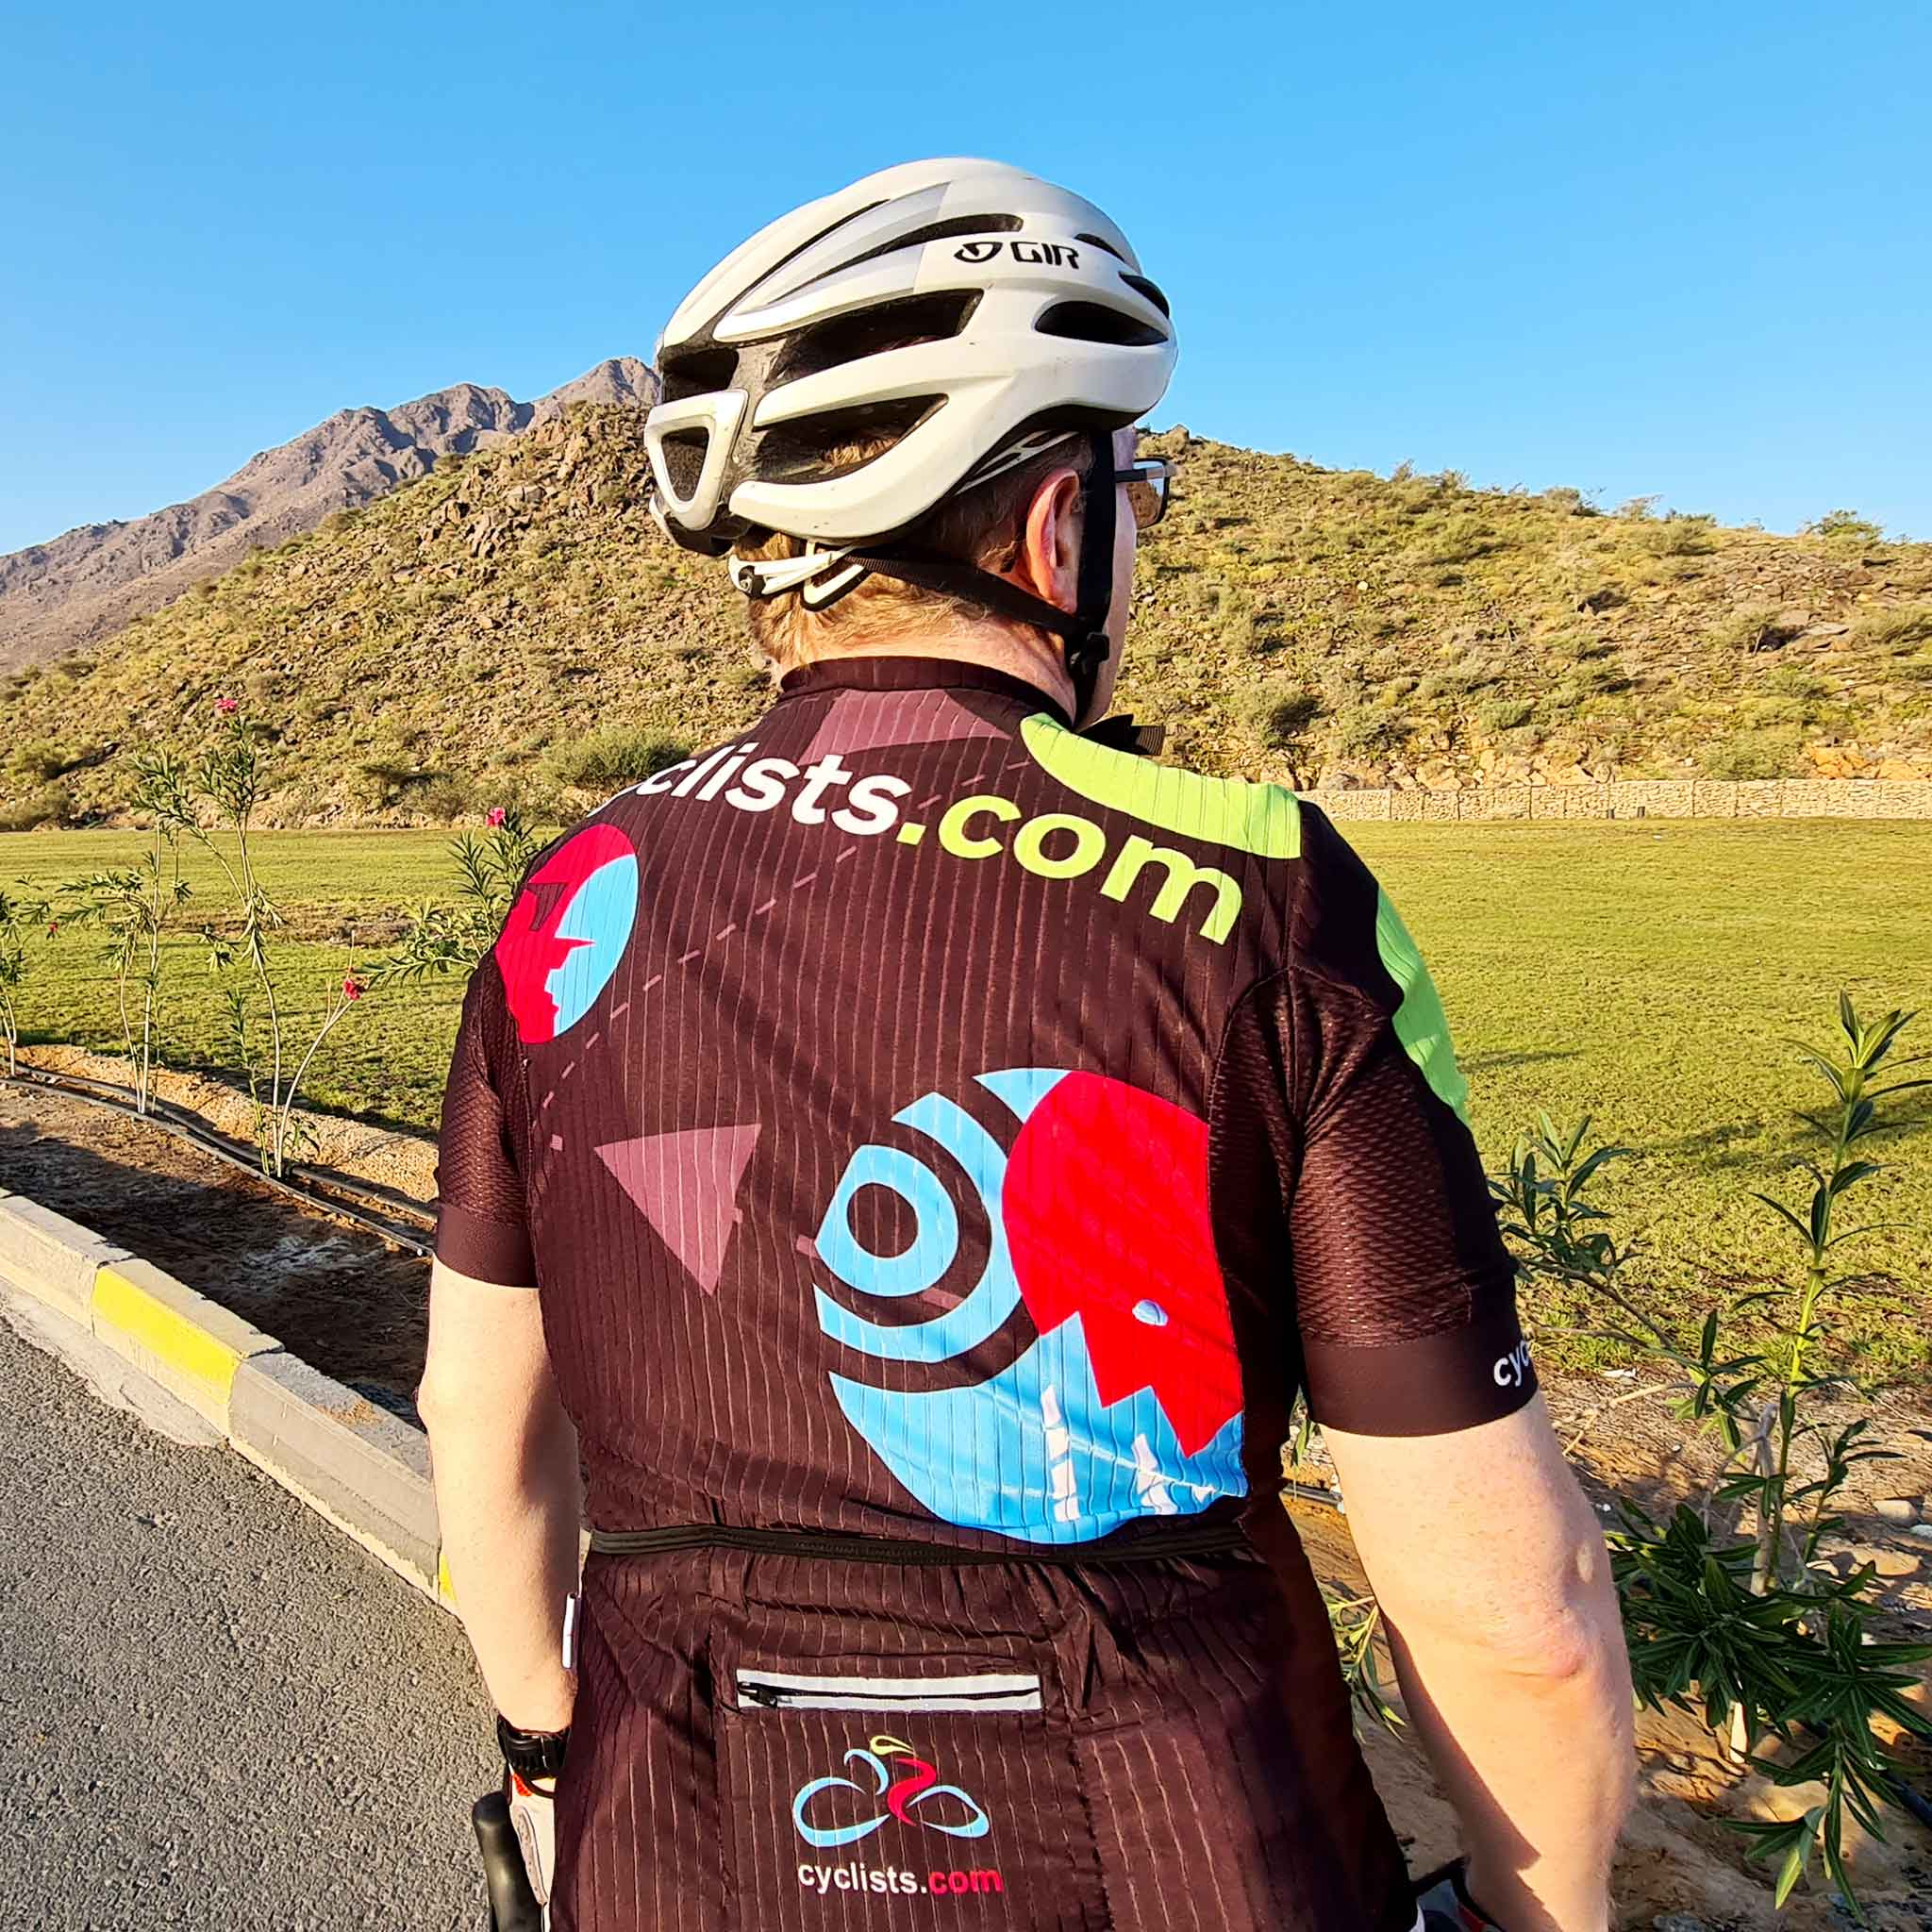 Rouleur Style Cyclists.com Team Jersey